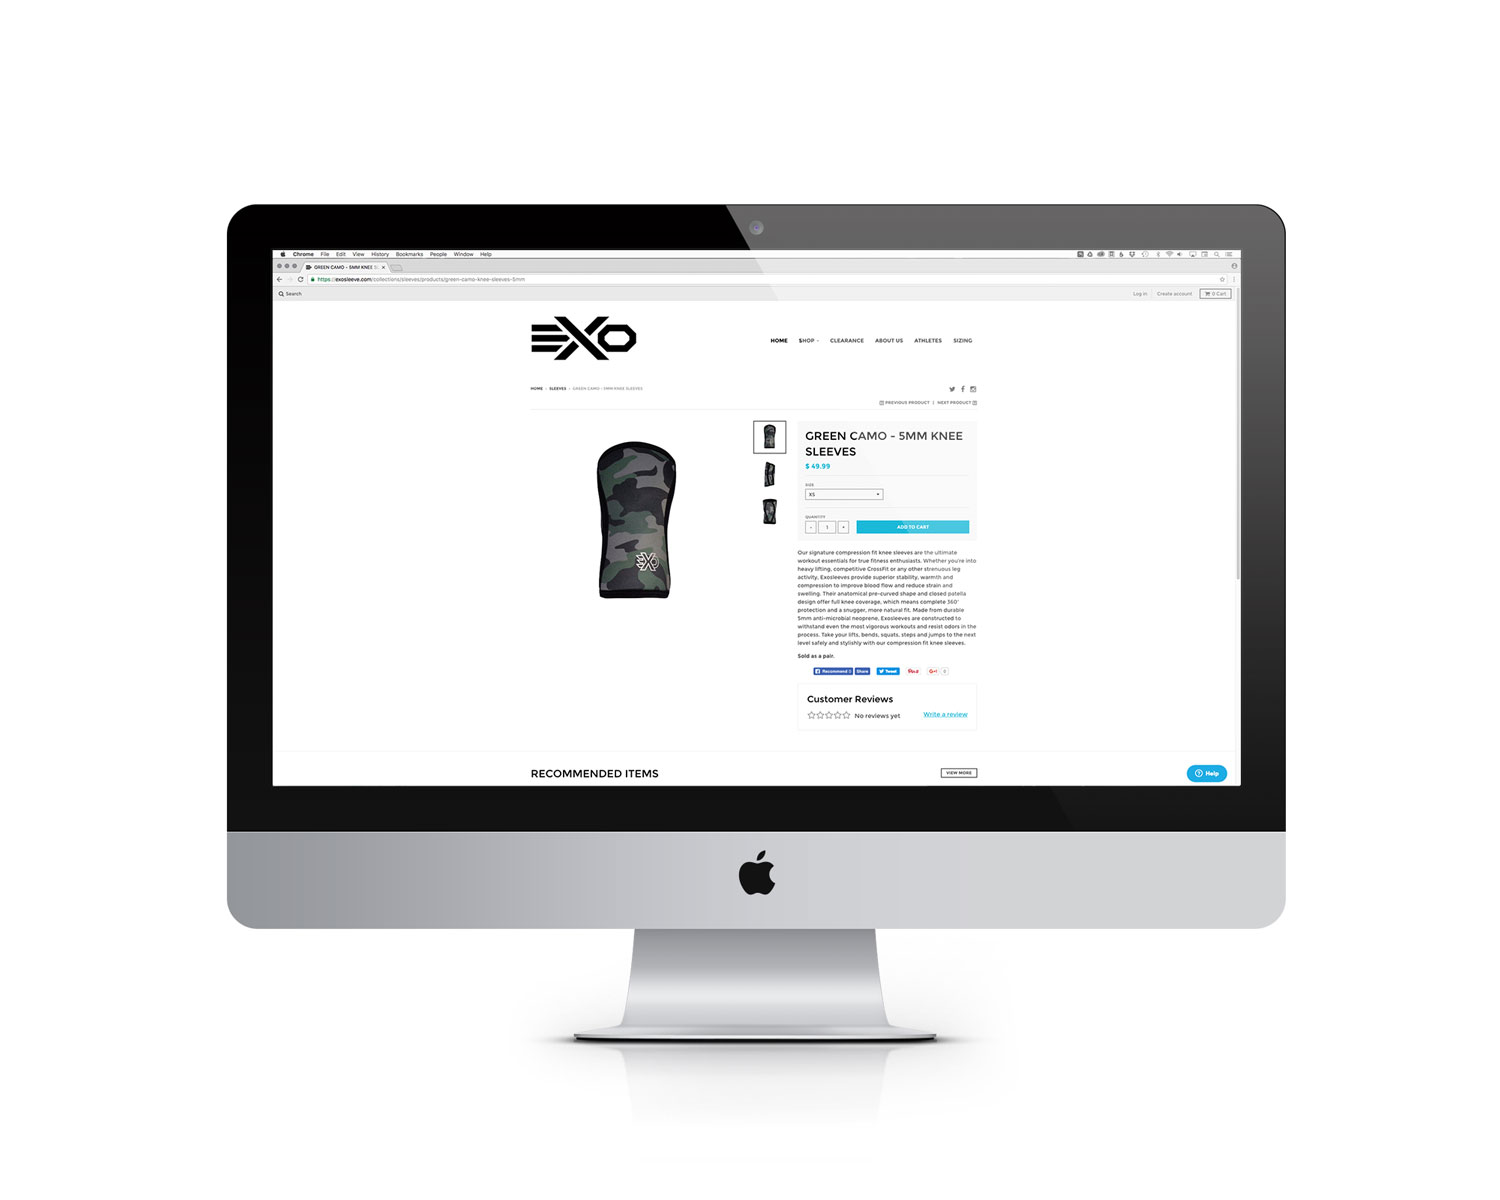 Exo Website Product Page